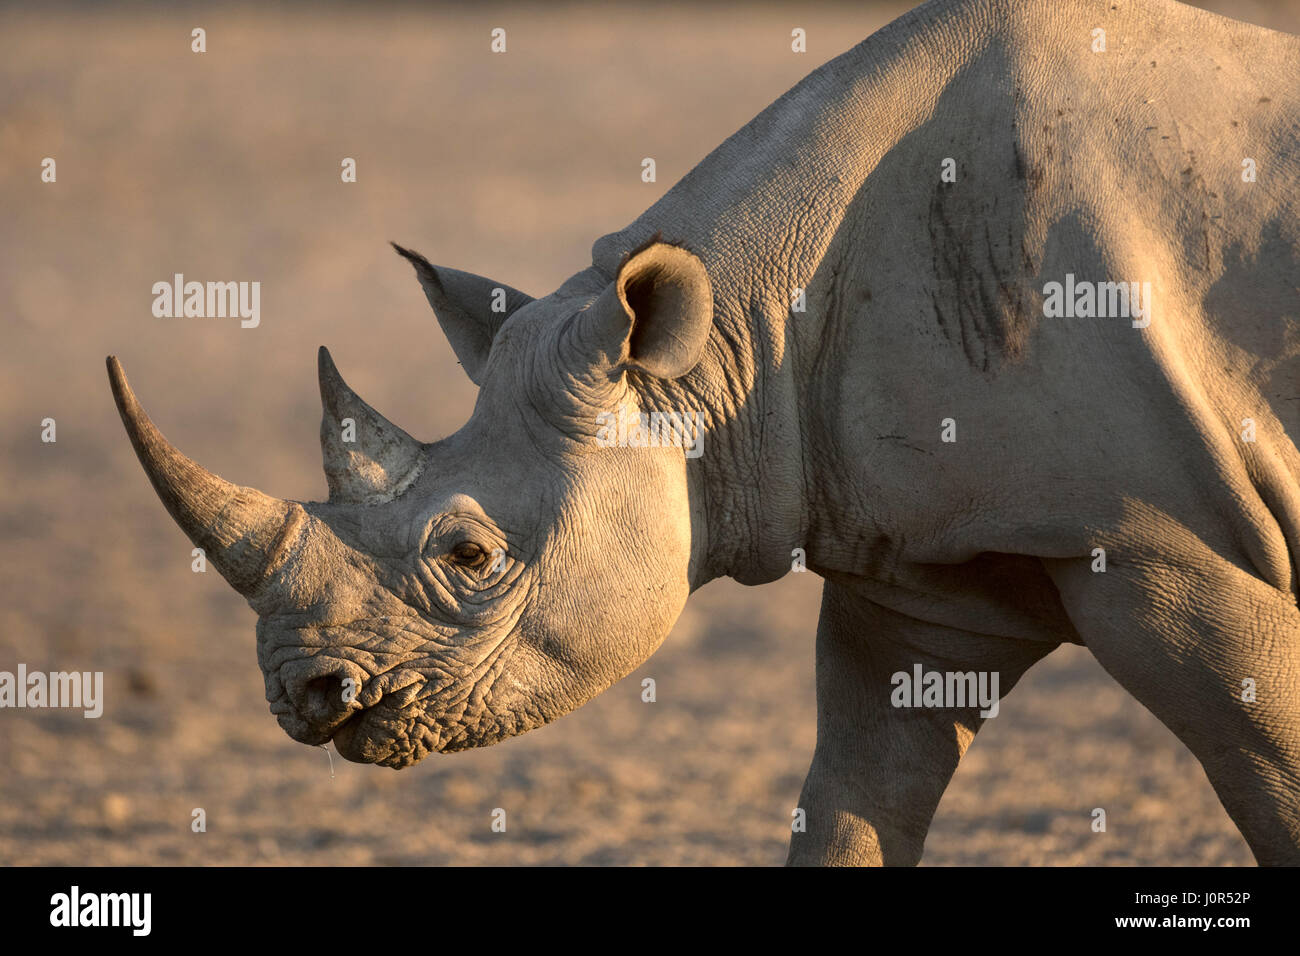 Black Rhino walking to a water hole. - Stock Image